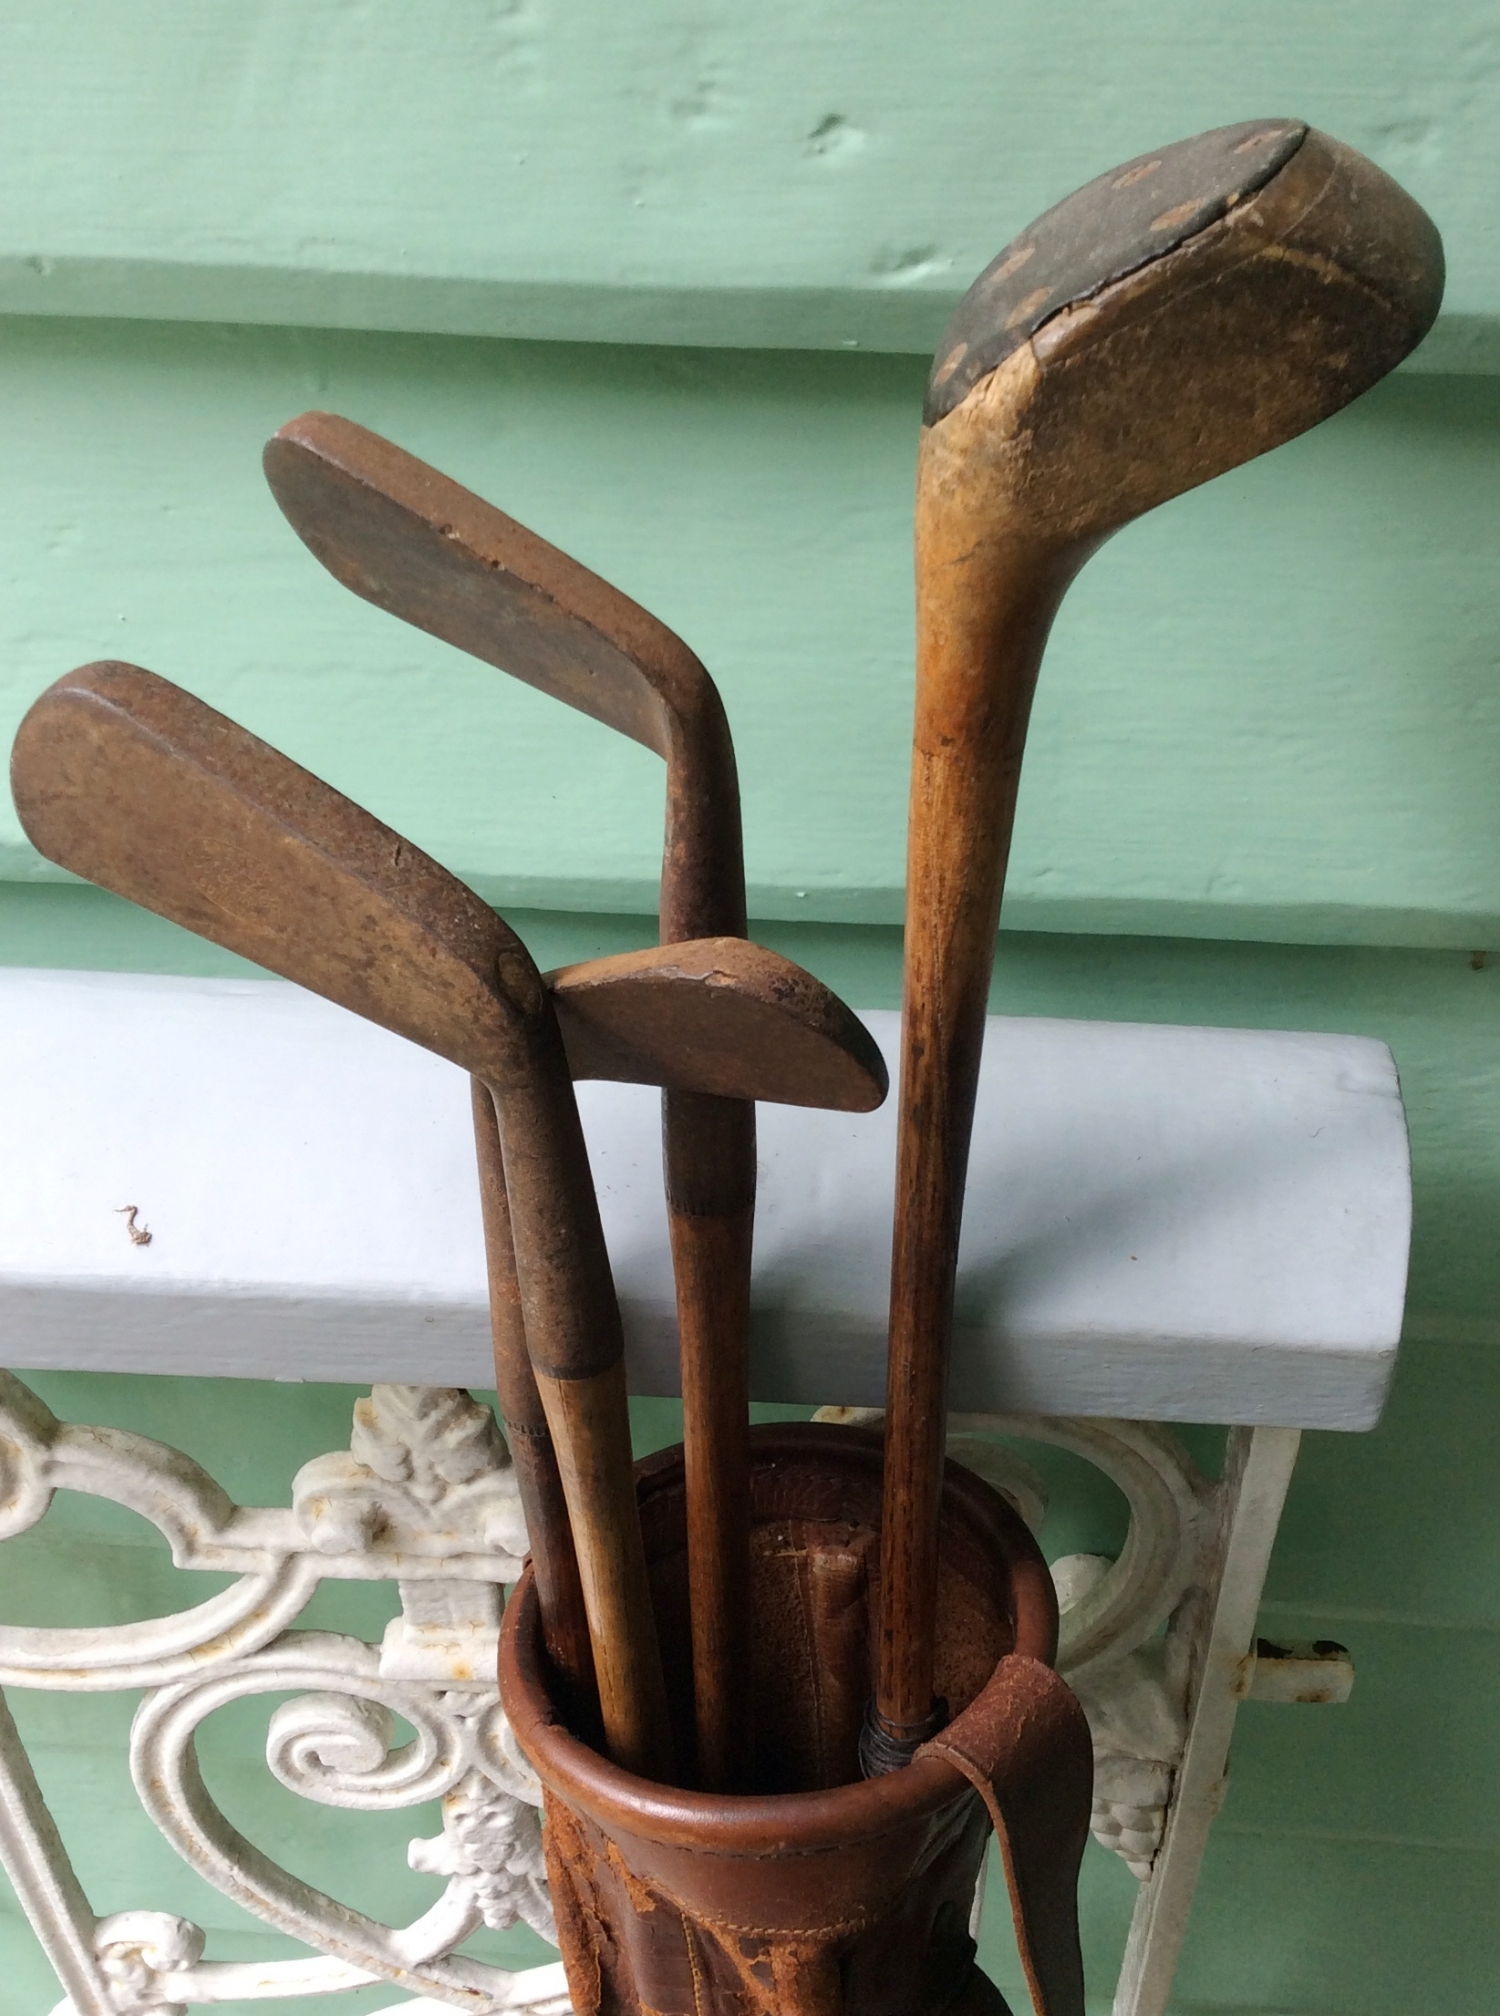 Closeup of four metal golf club heads.